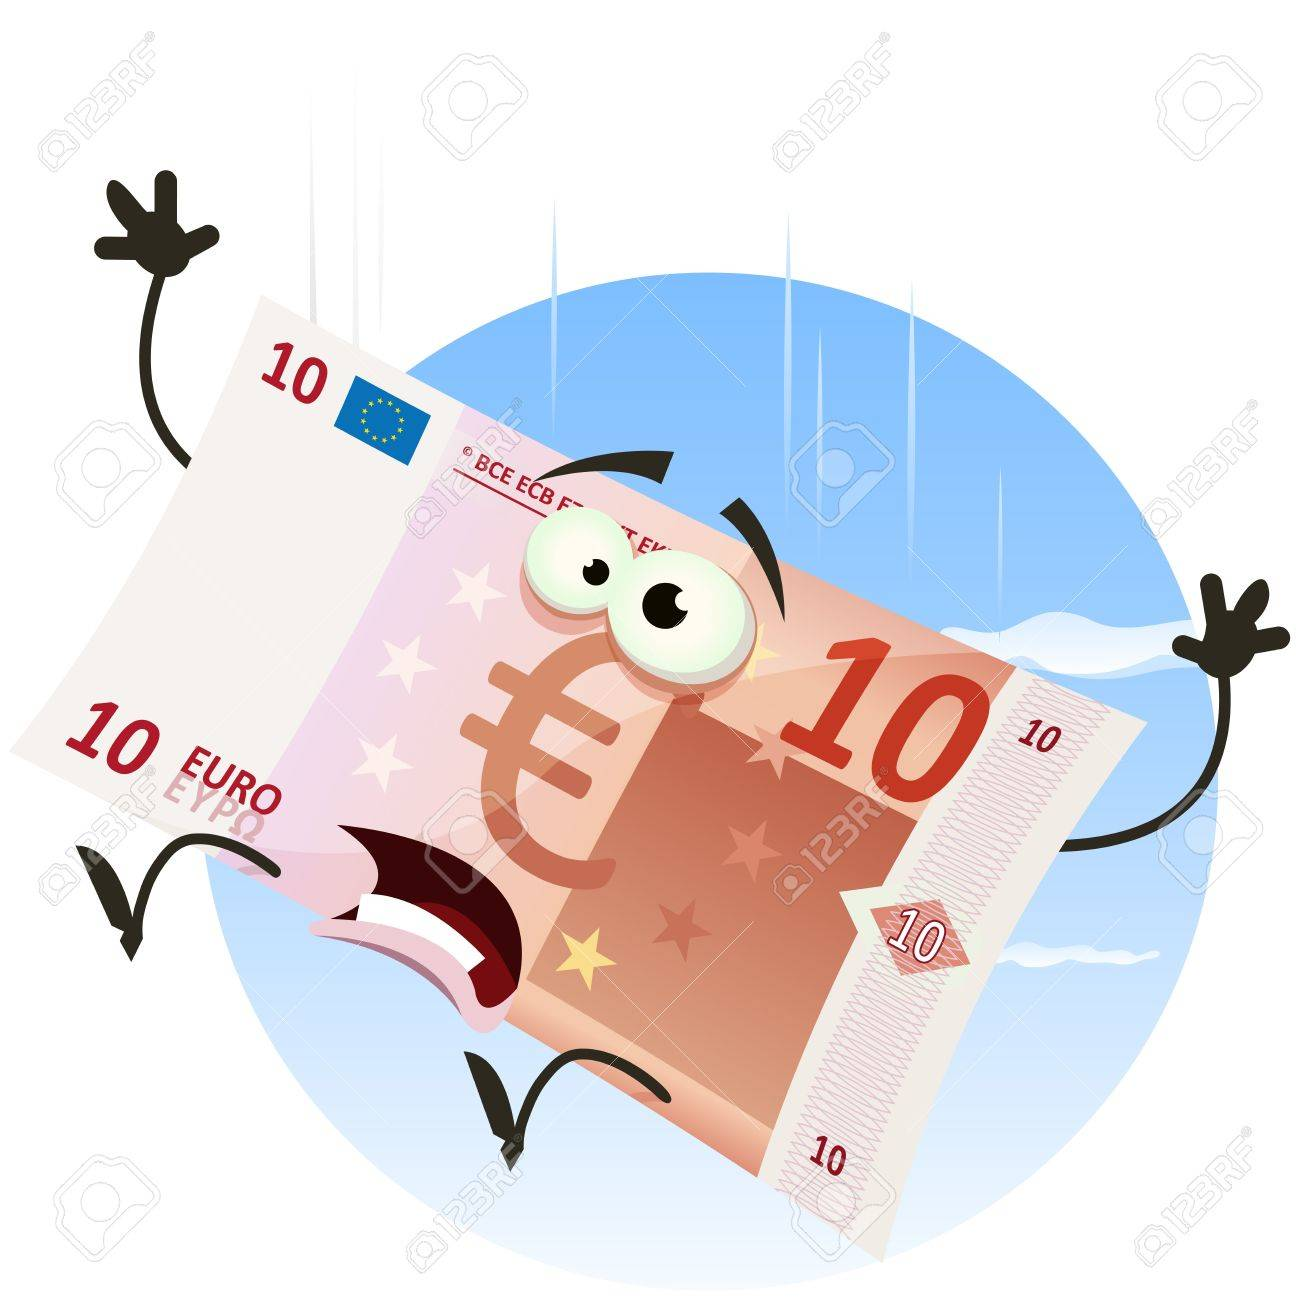 Illustration Of A Cartoon Euro Bill Character Falling In The